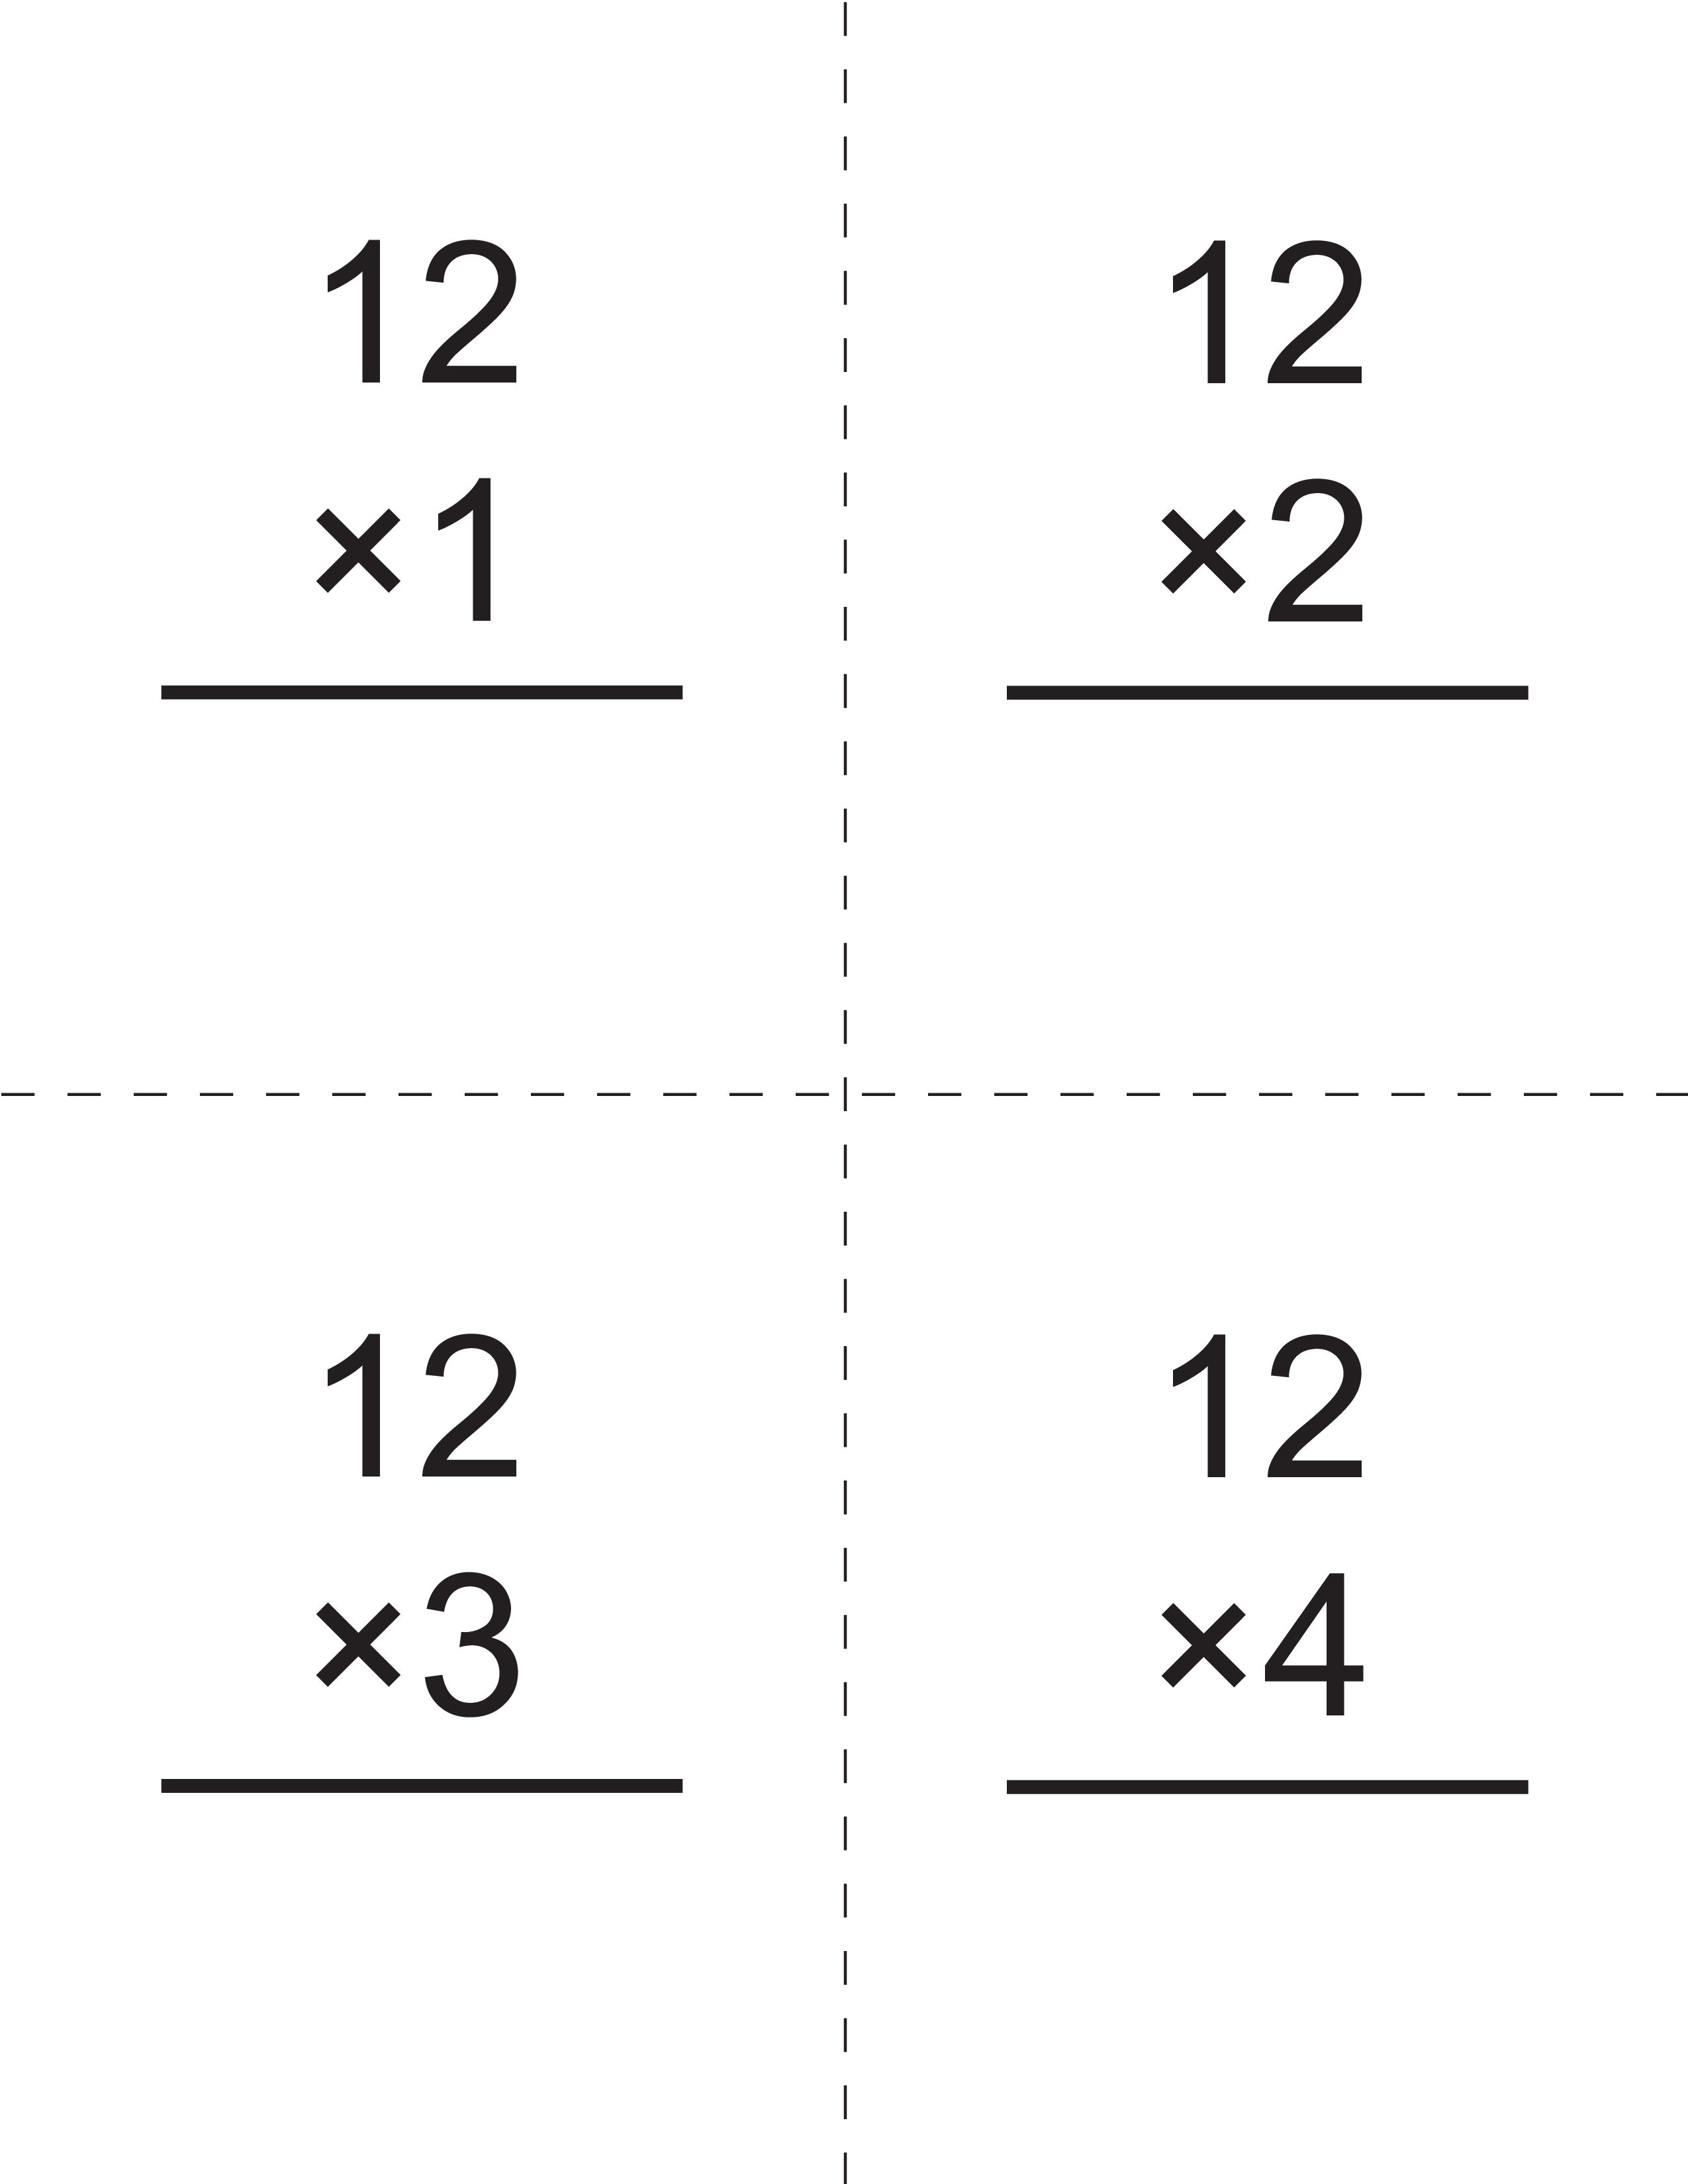 Multiplication Times 12 Flashcards - How To Learn